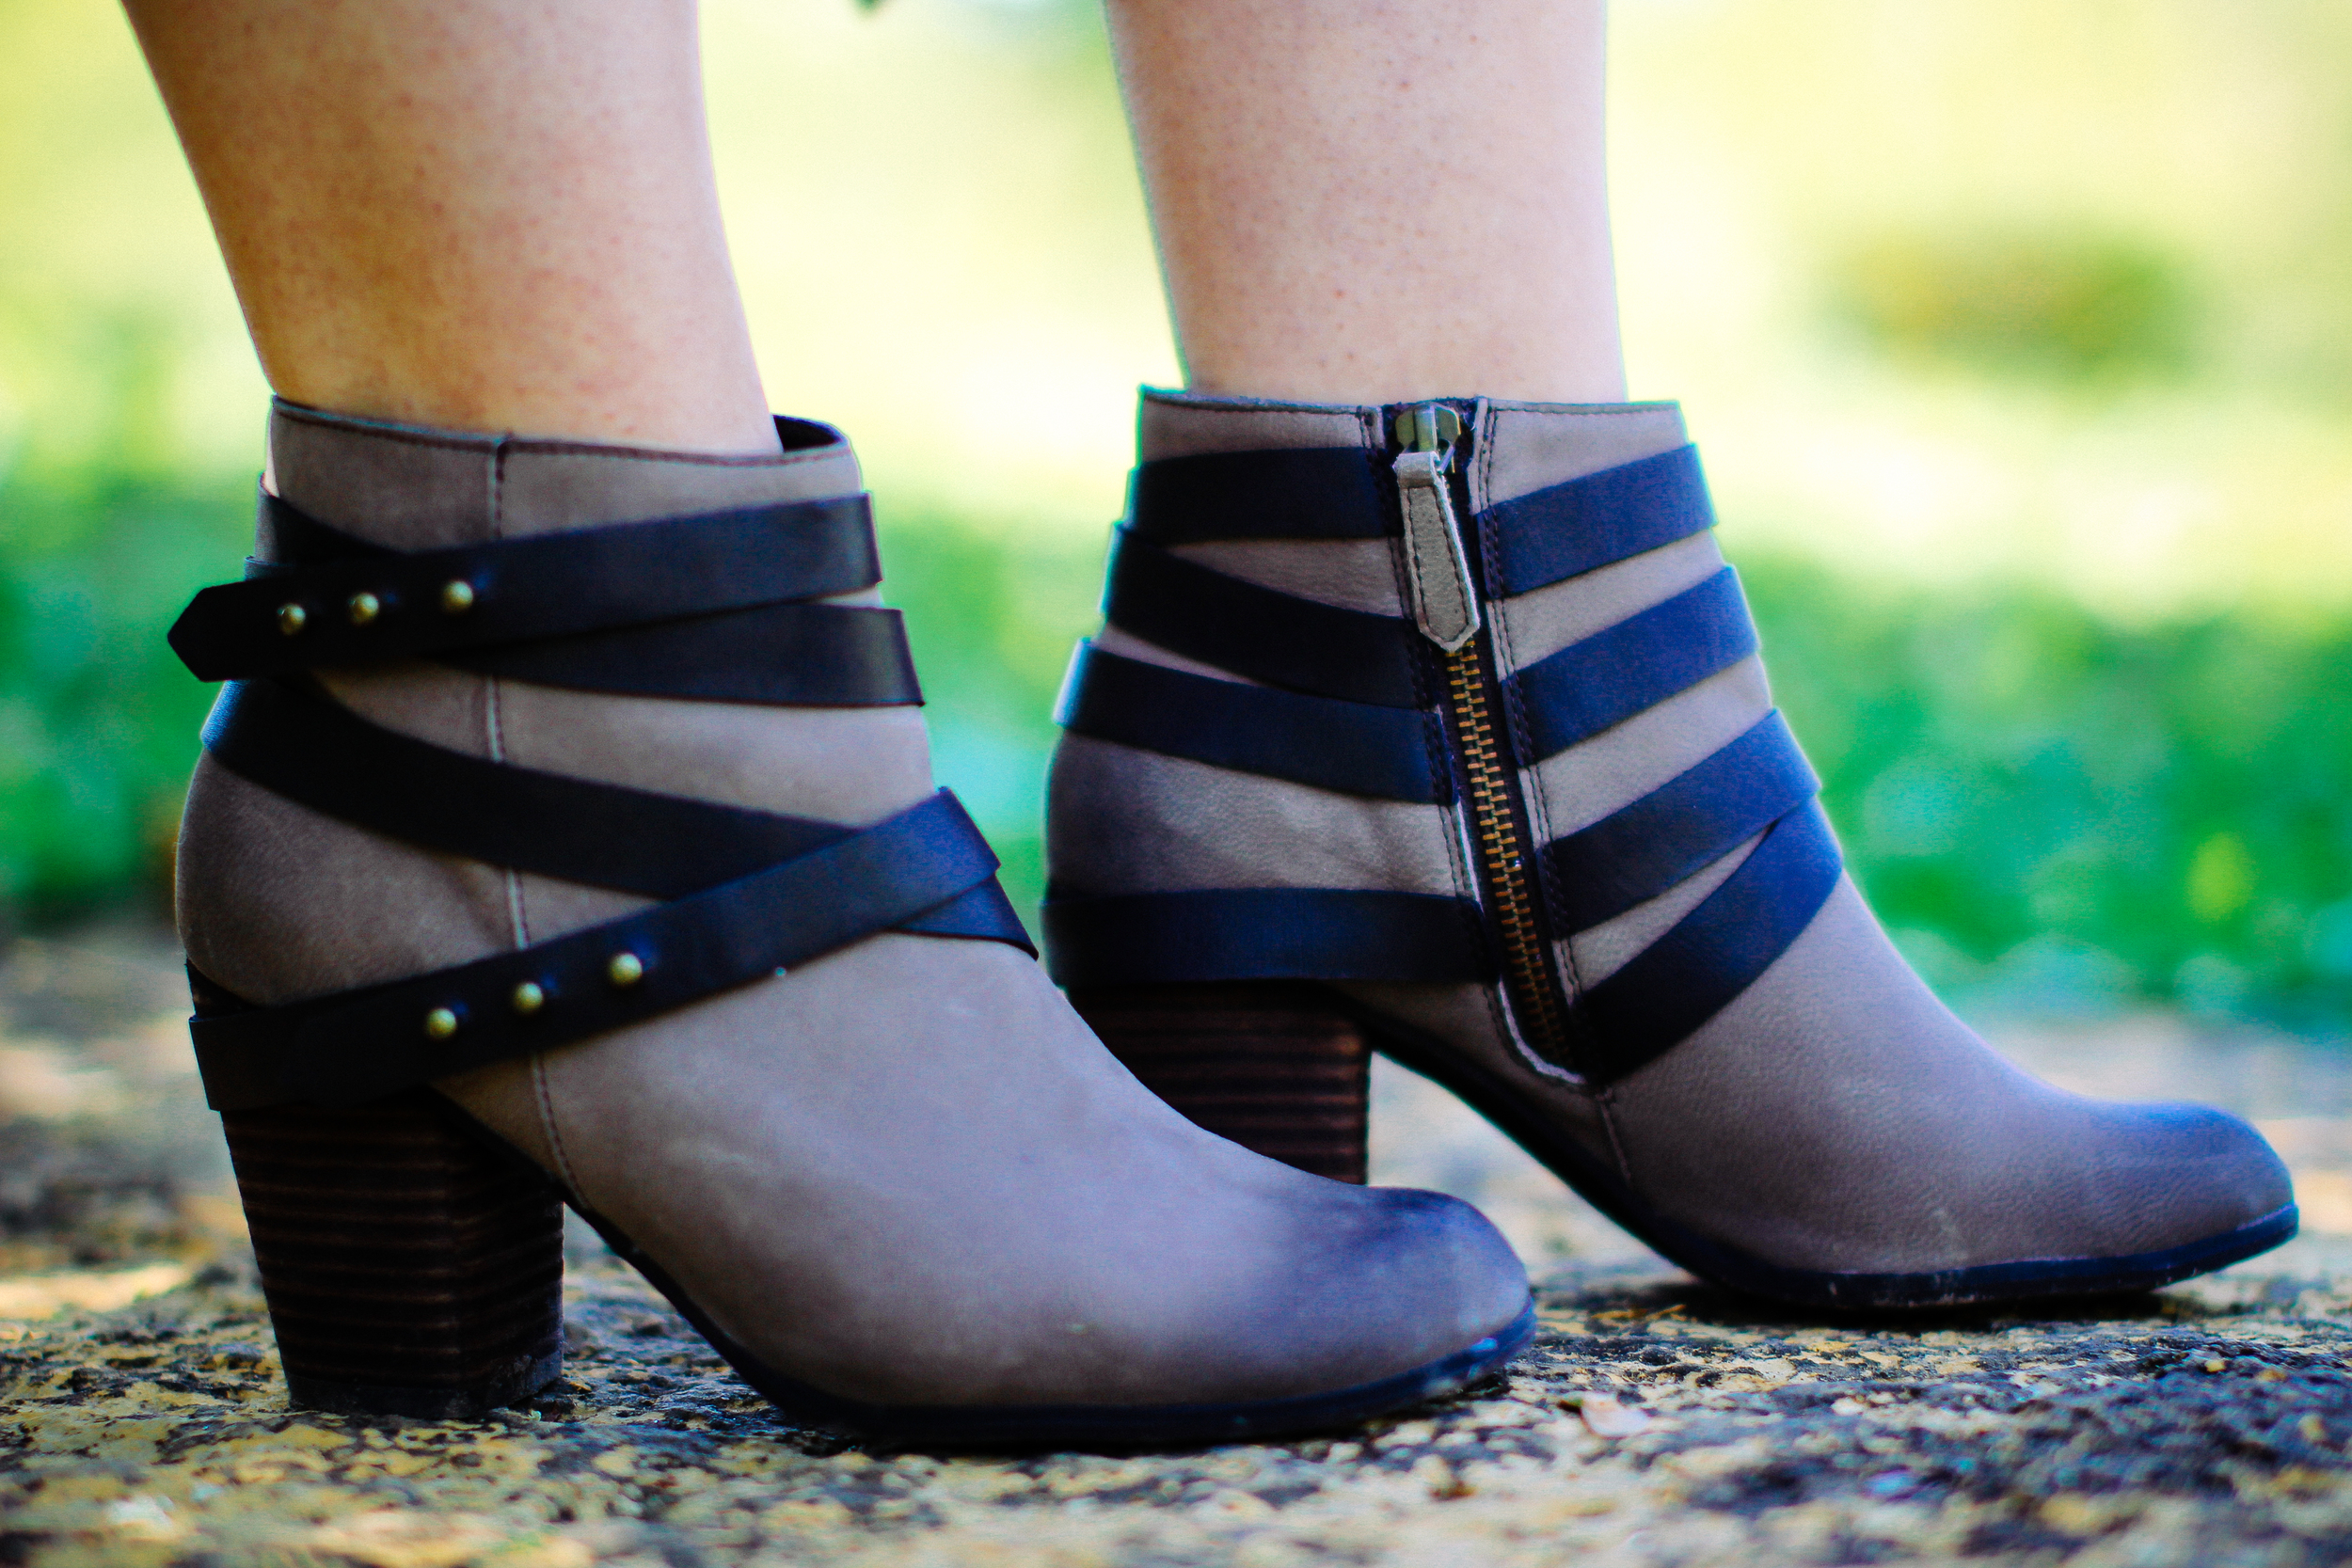 Spring Style - Nordstrom Booties via www.chelceytate.com